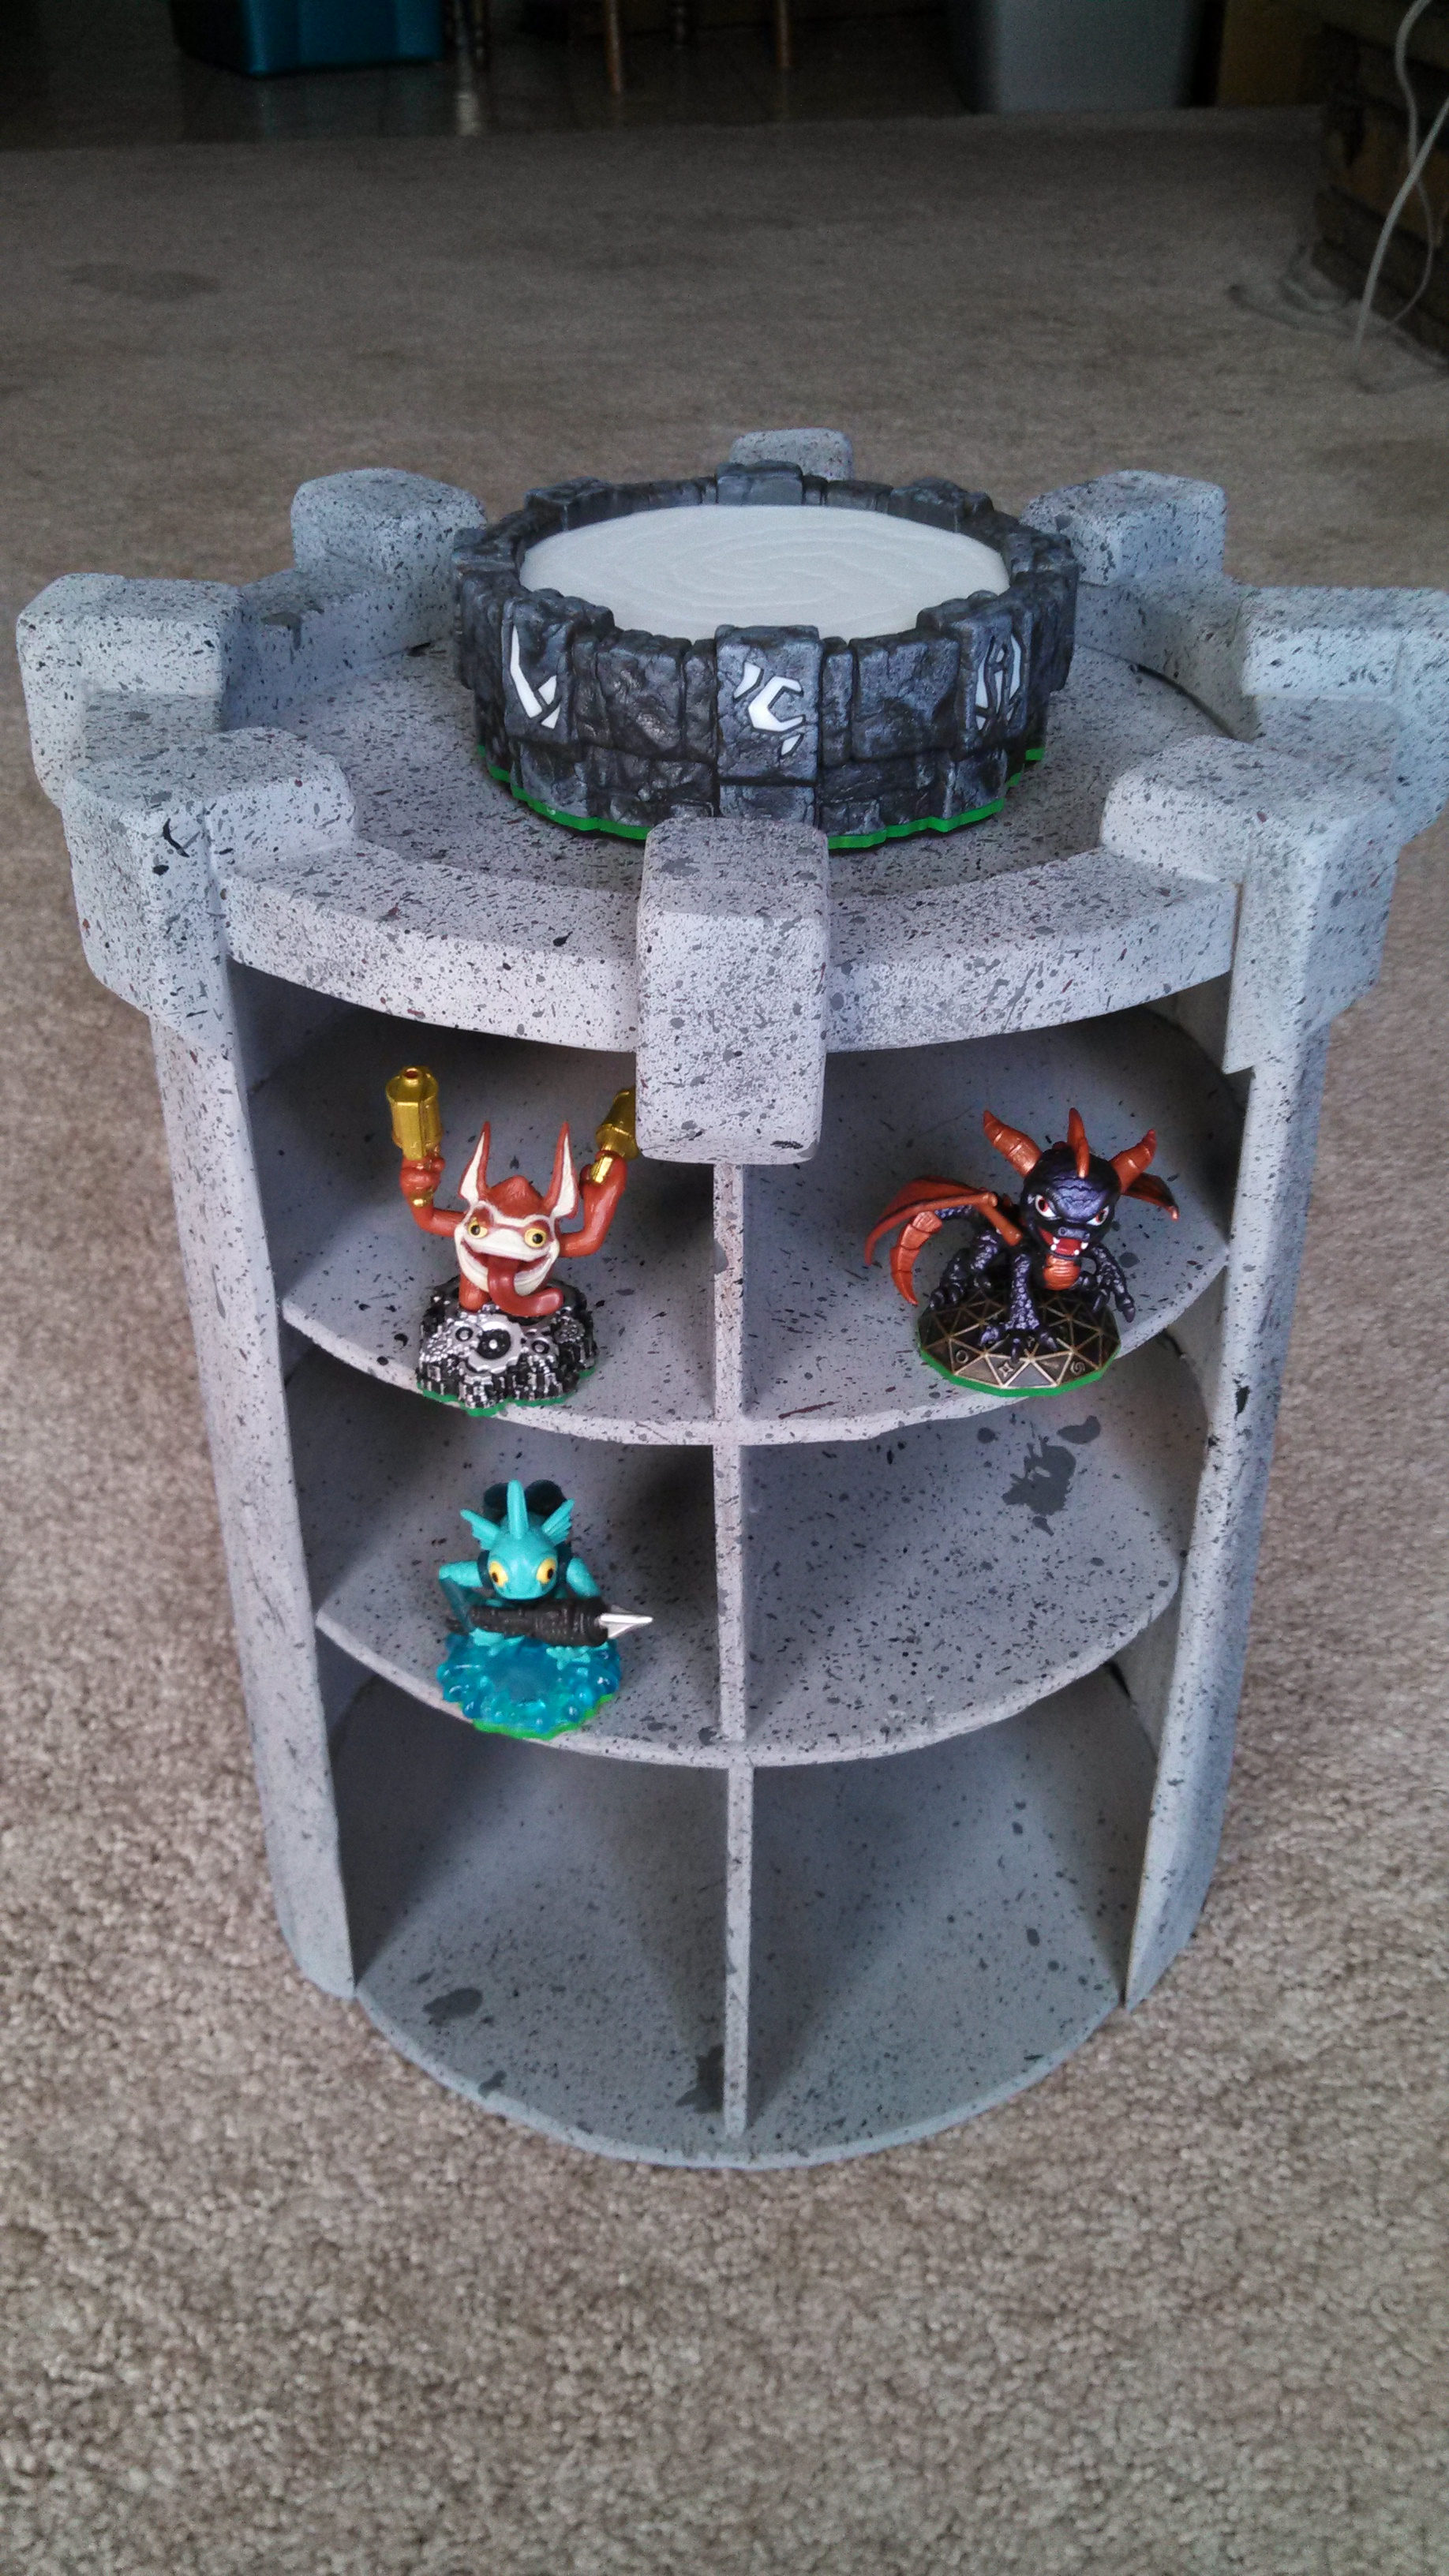 Skylanders Storage Tower for less than $20